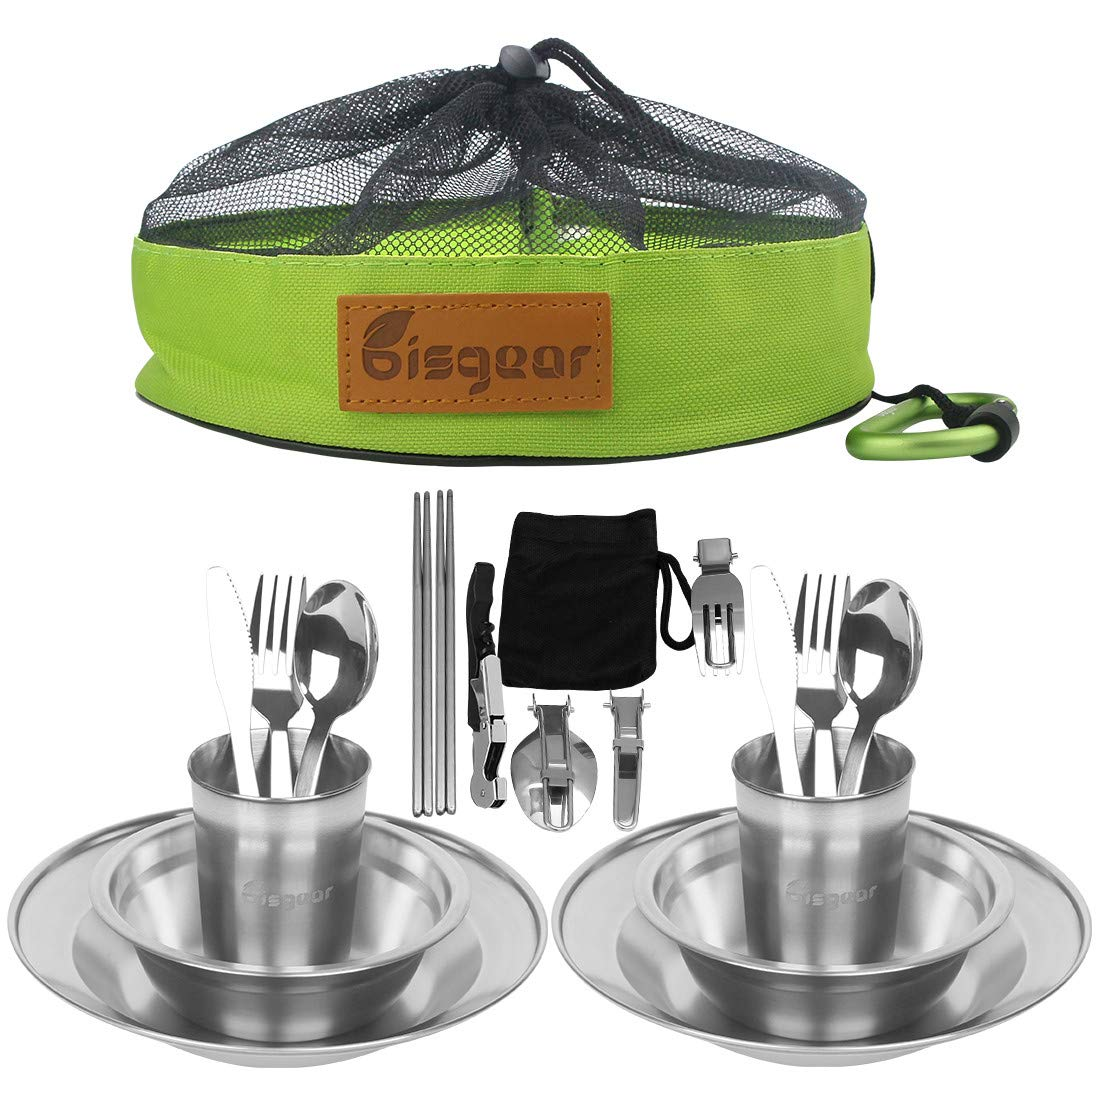 Bisgear 20pcs Stainless Steel Tableware Mess Kit Includes Plate Bowl Cup Spoon Fork Knife Chopsticks Carabiner Wine Opener Dishcloth & Mesh Travel Bag for Camping Backpacking & Hiking (20pcs) by Bisgear